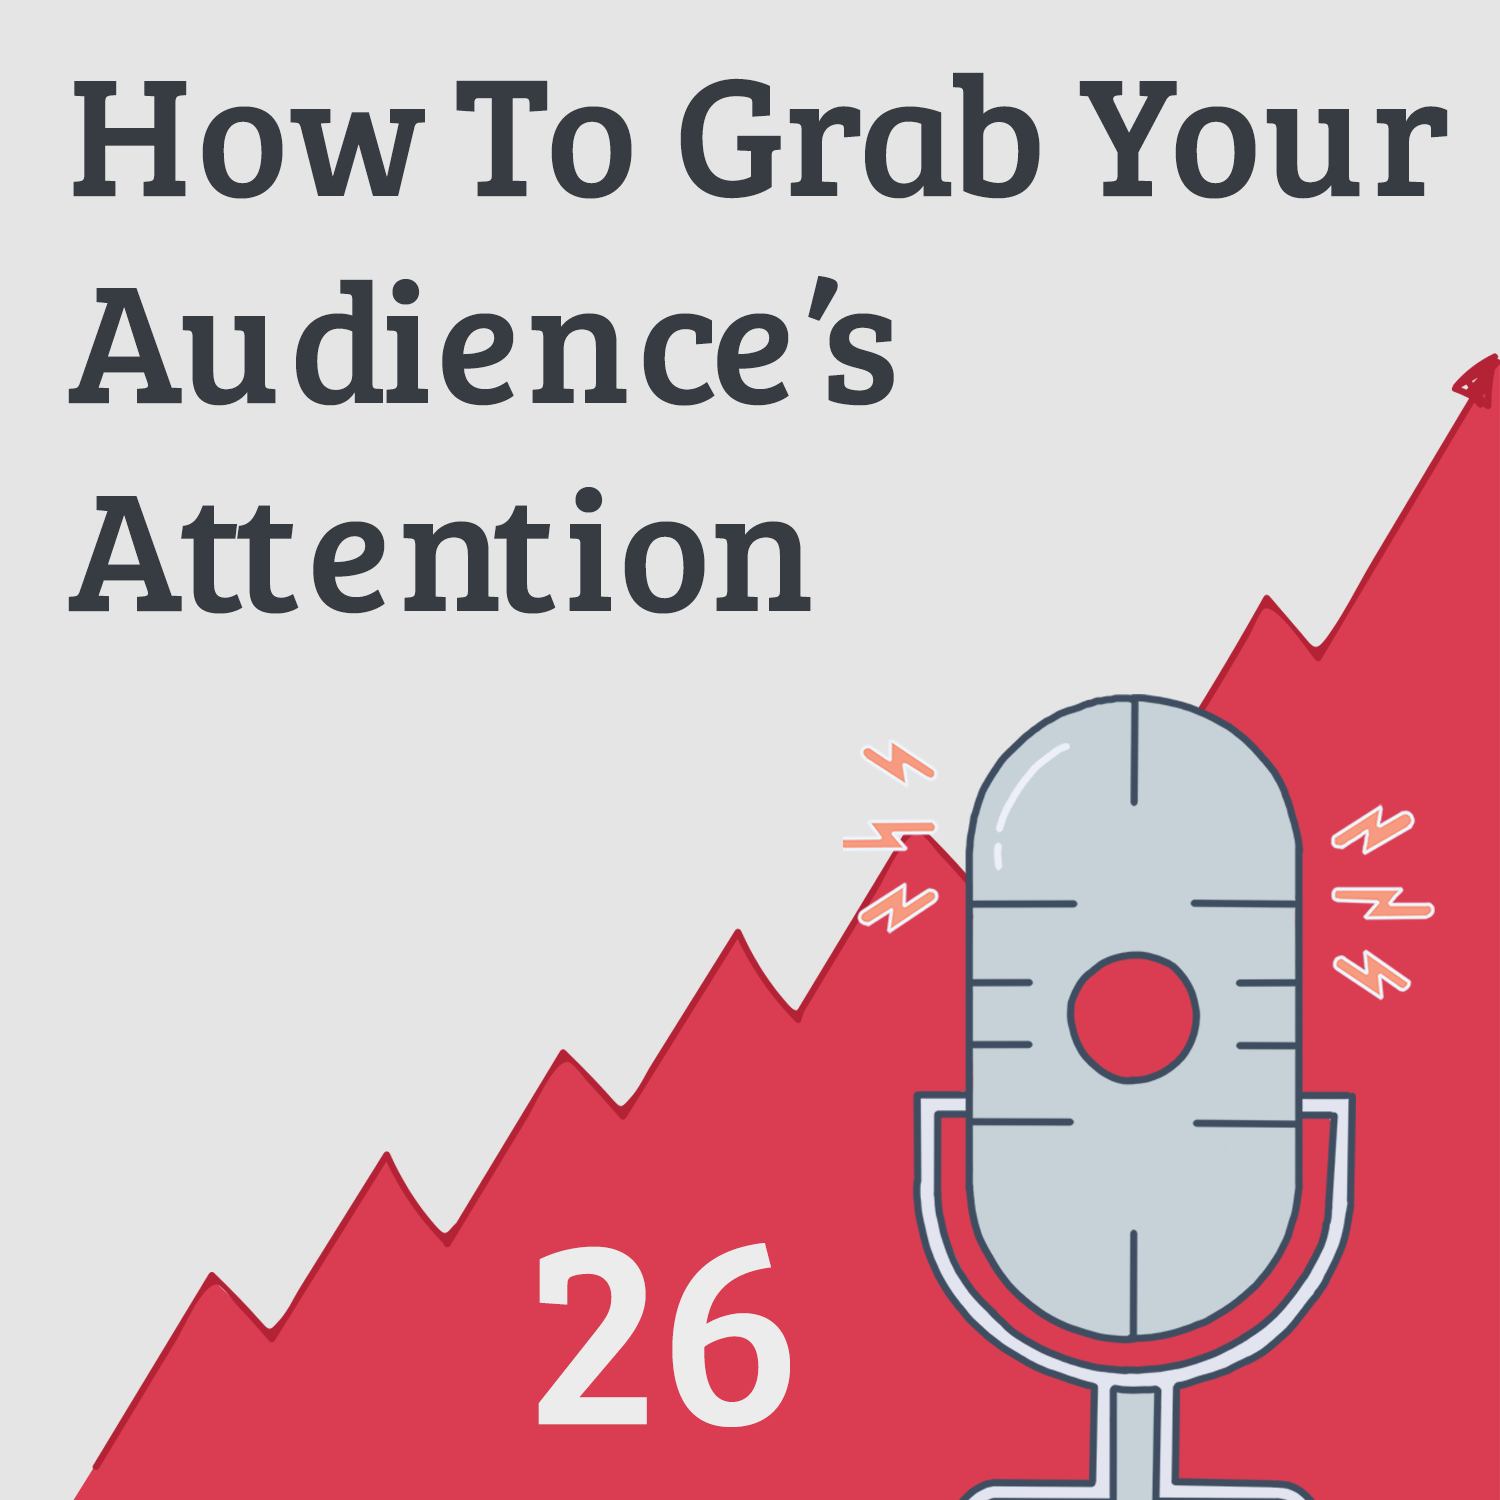 How To Grab Your Audience's Undivided Attention in 2018